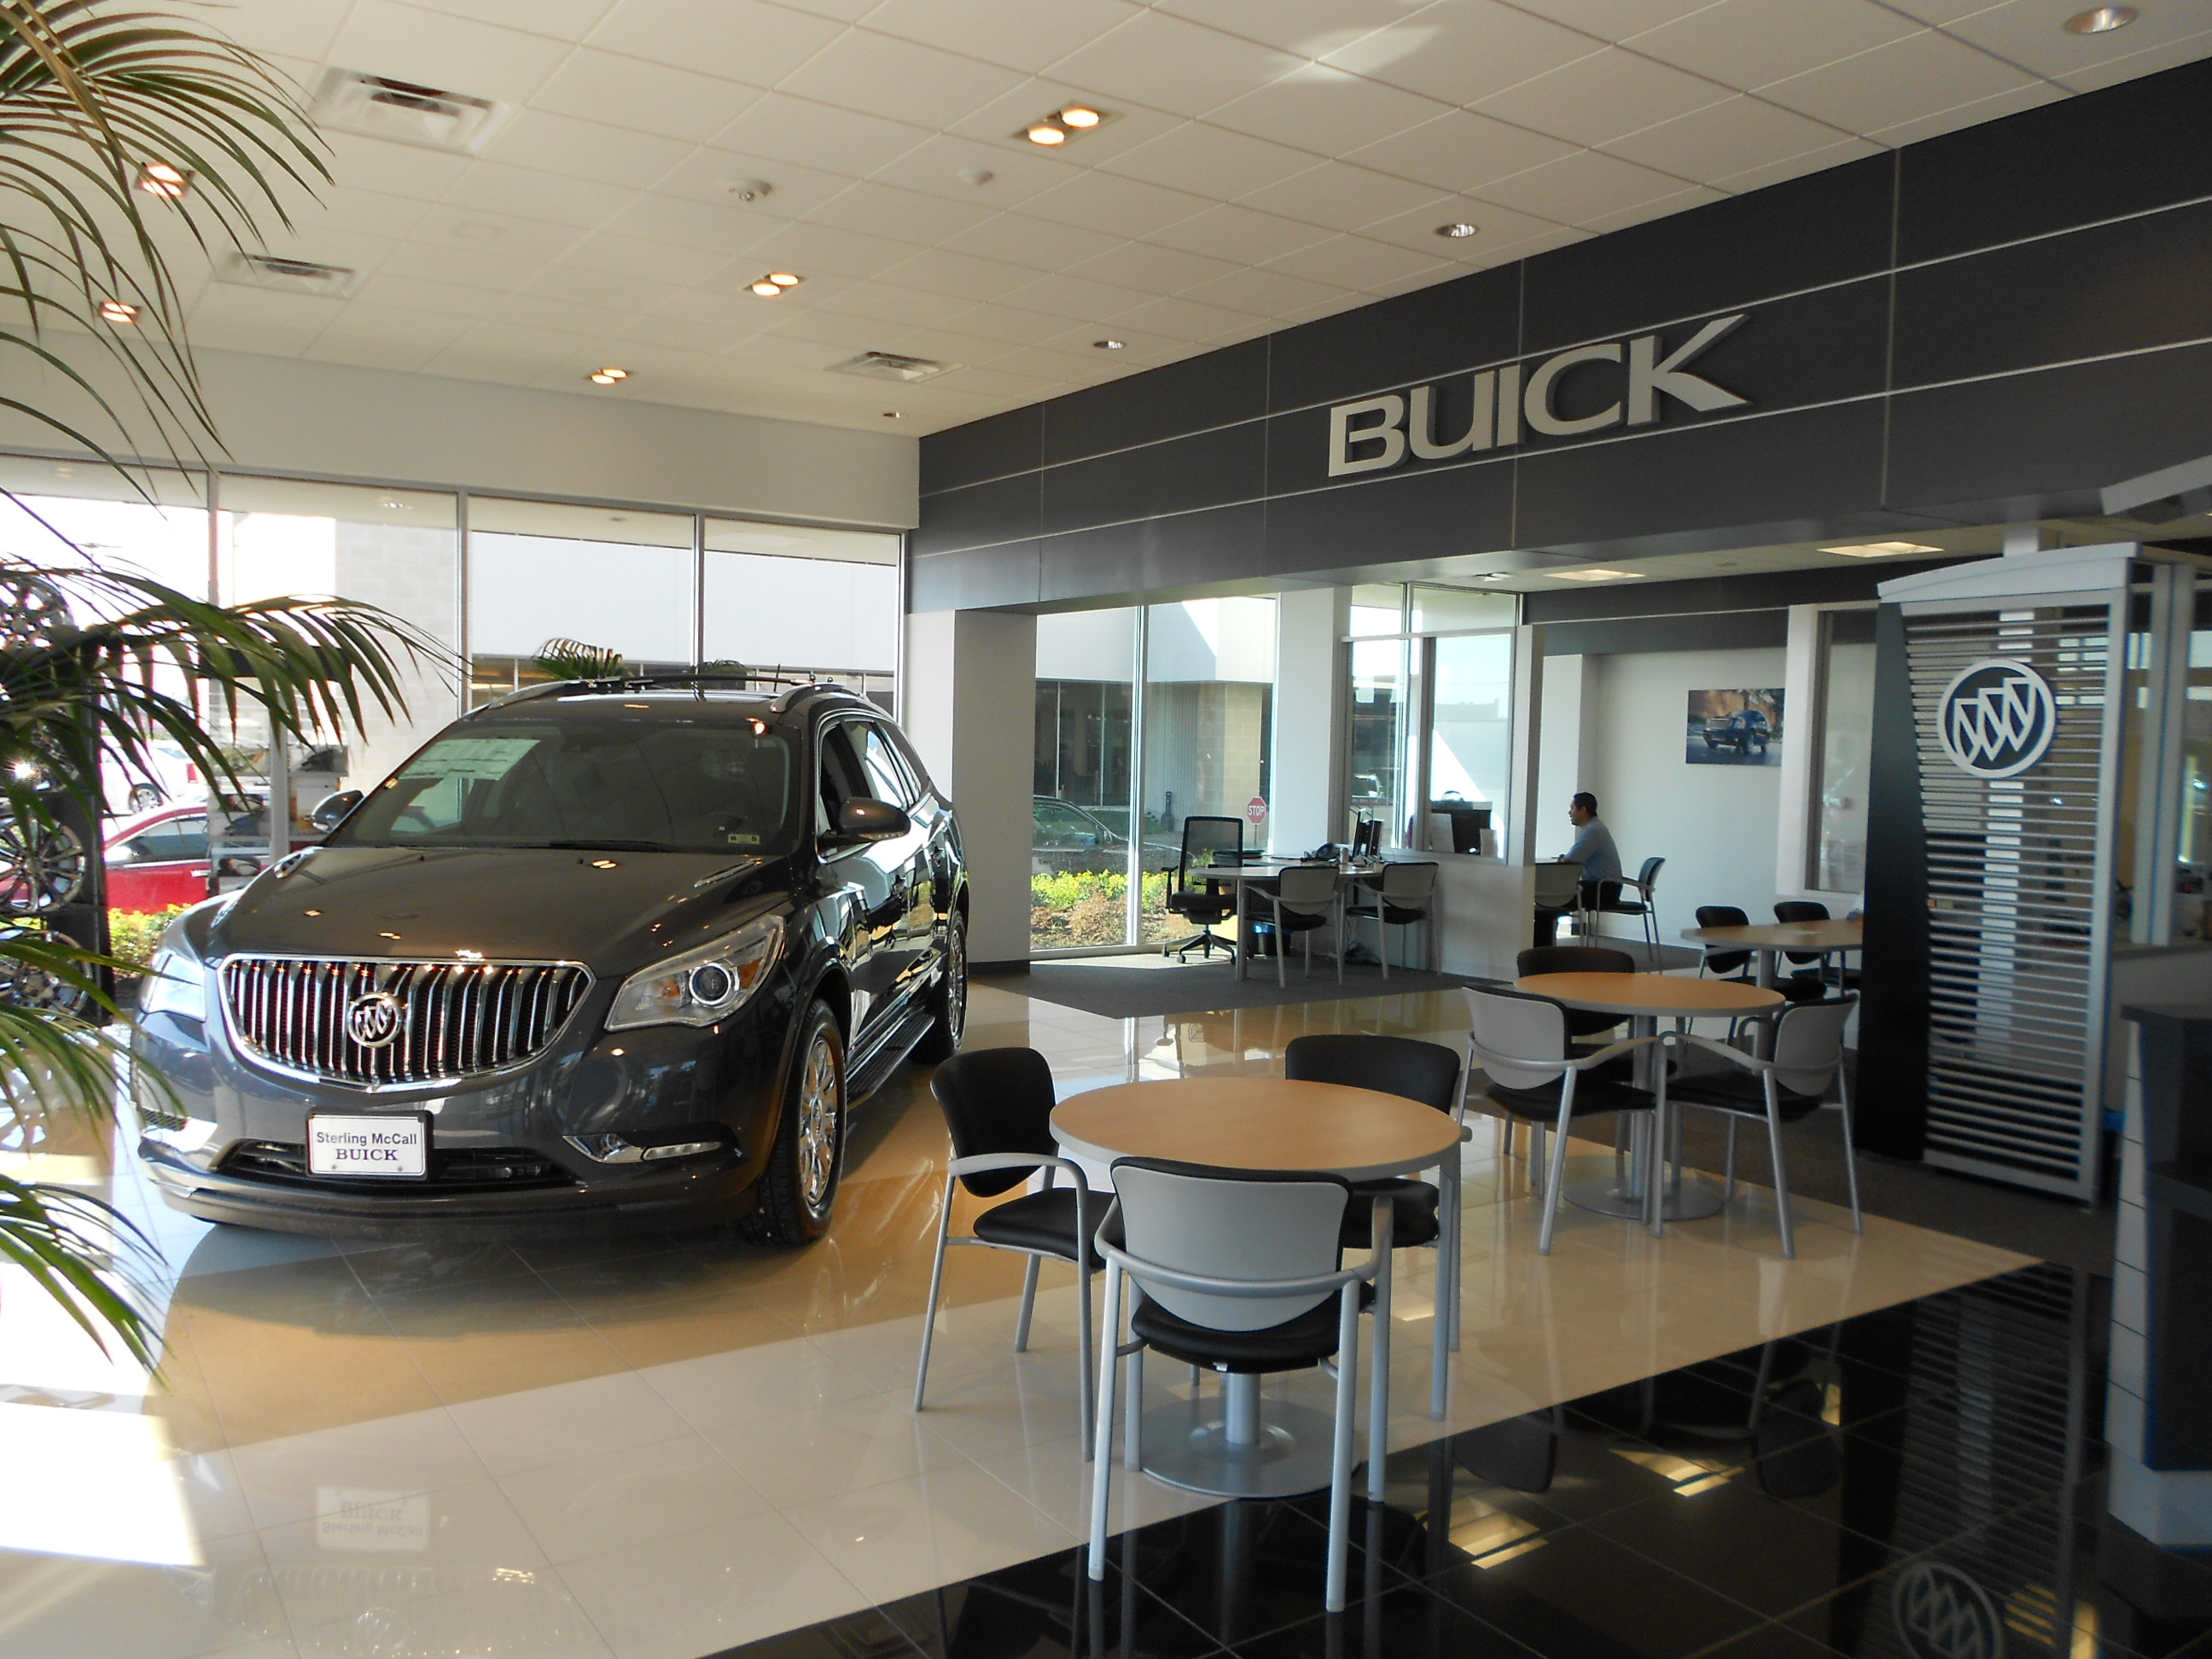 Sterling McCall Buick GMC image 2